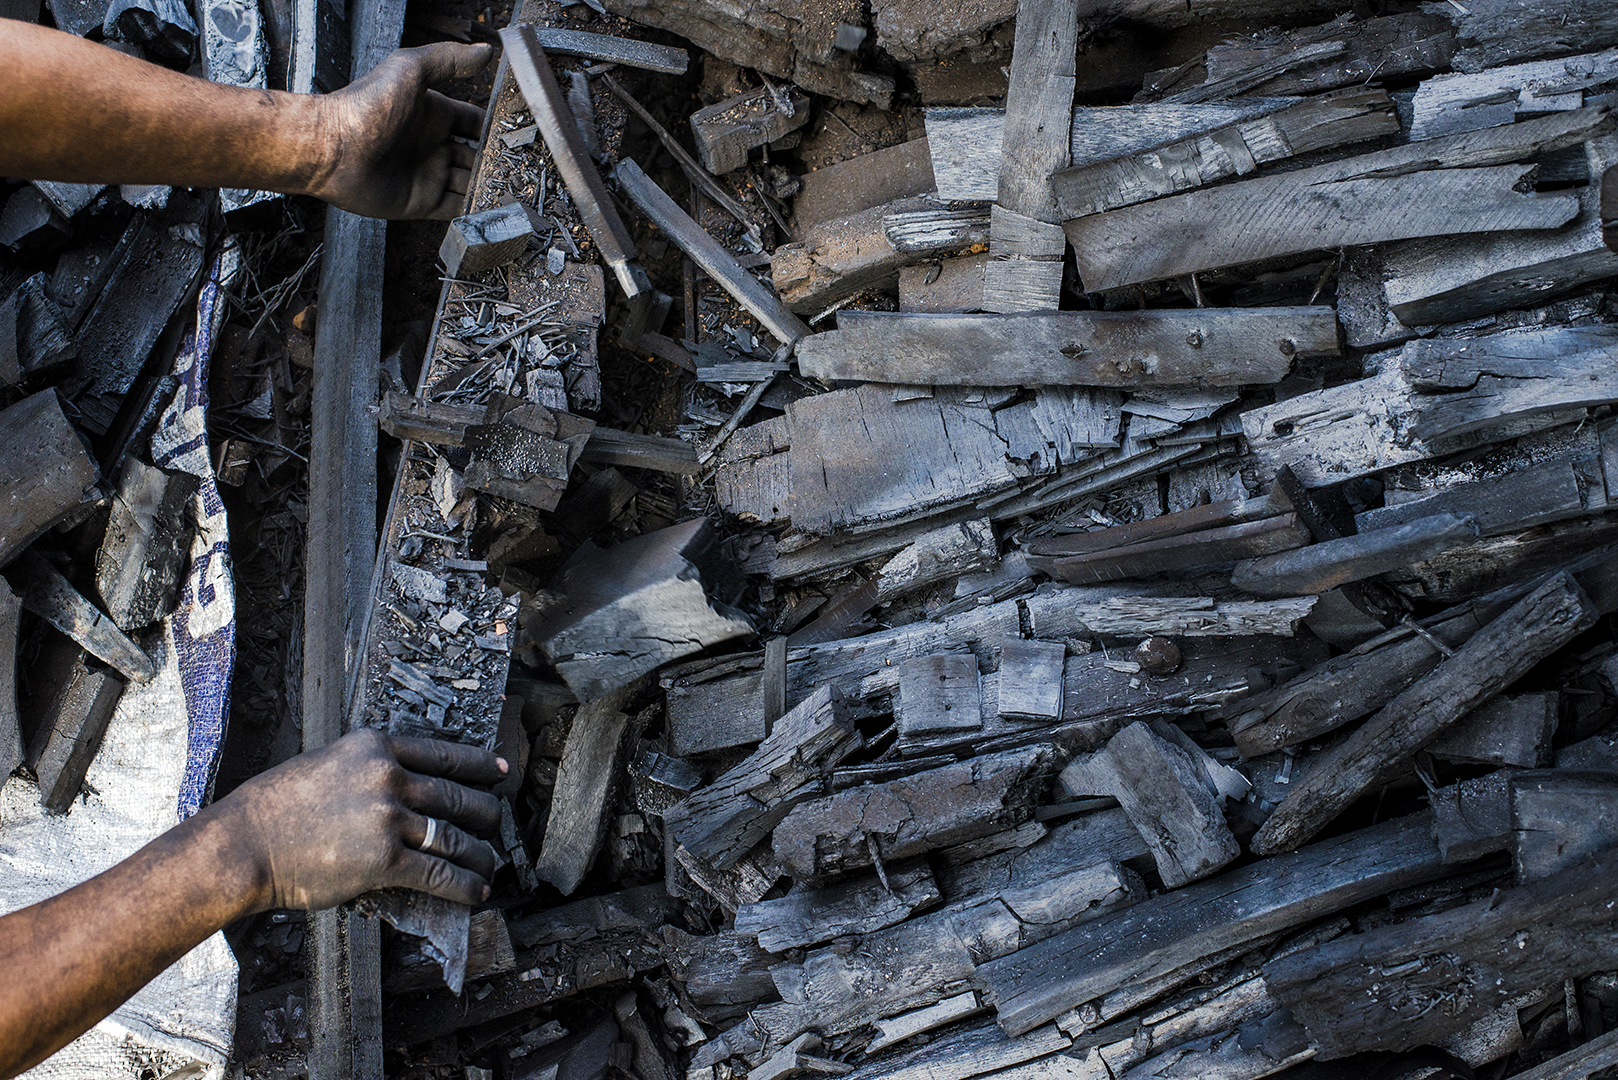 Nails and metal parts are separated and collected in the final process of charcoal production. Mostly women and girls collect them as an extra income. One kilo of nails is sold for 10 pesos in a Junk Shop near by. Malabon, Philippines, 2017